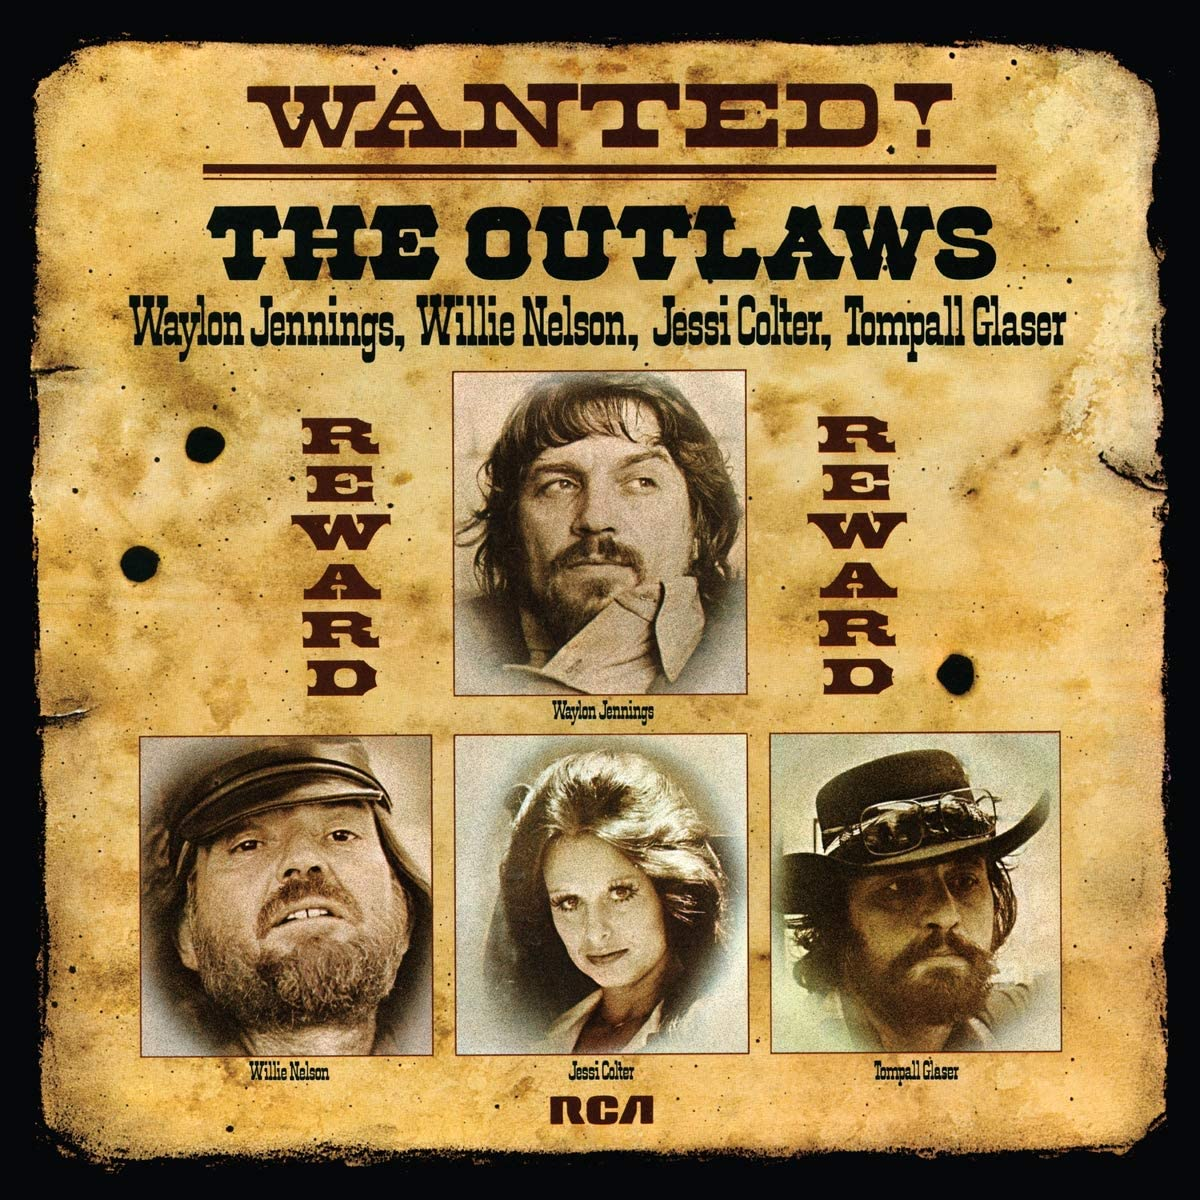 Jennings/Nelson/Colter/Wanted! The Outlaws [LP]